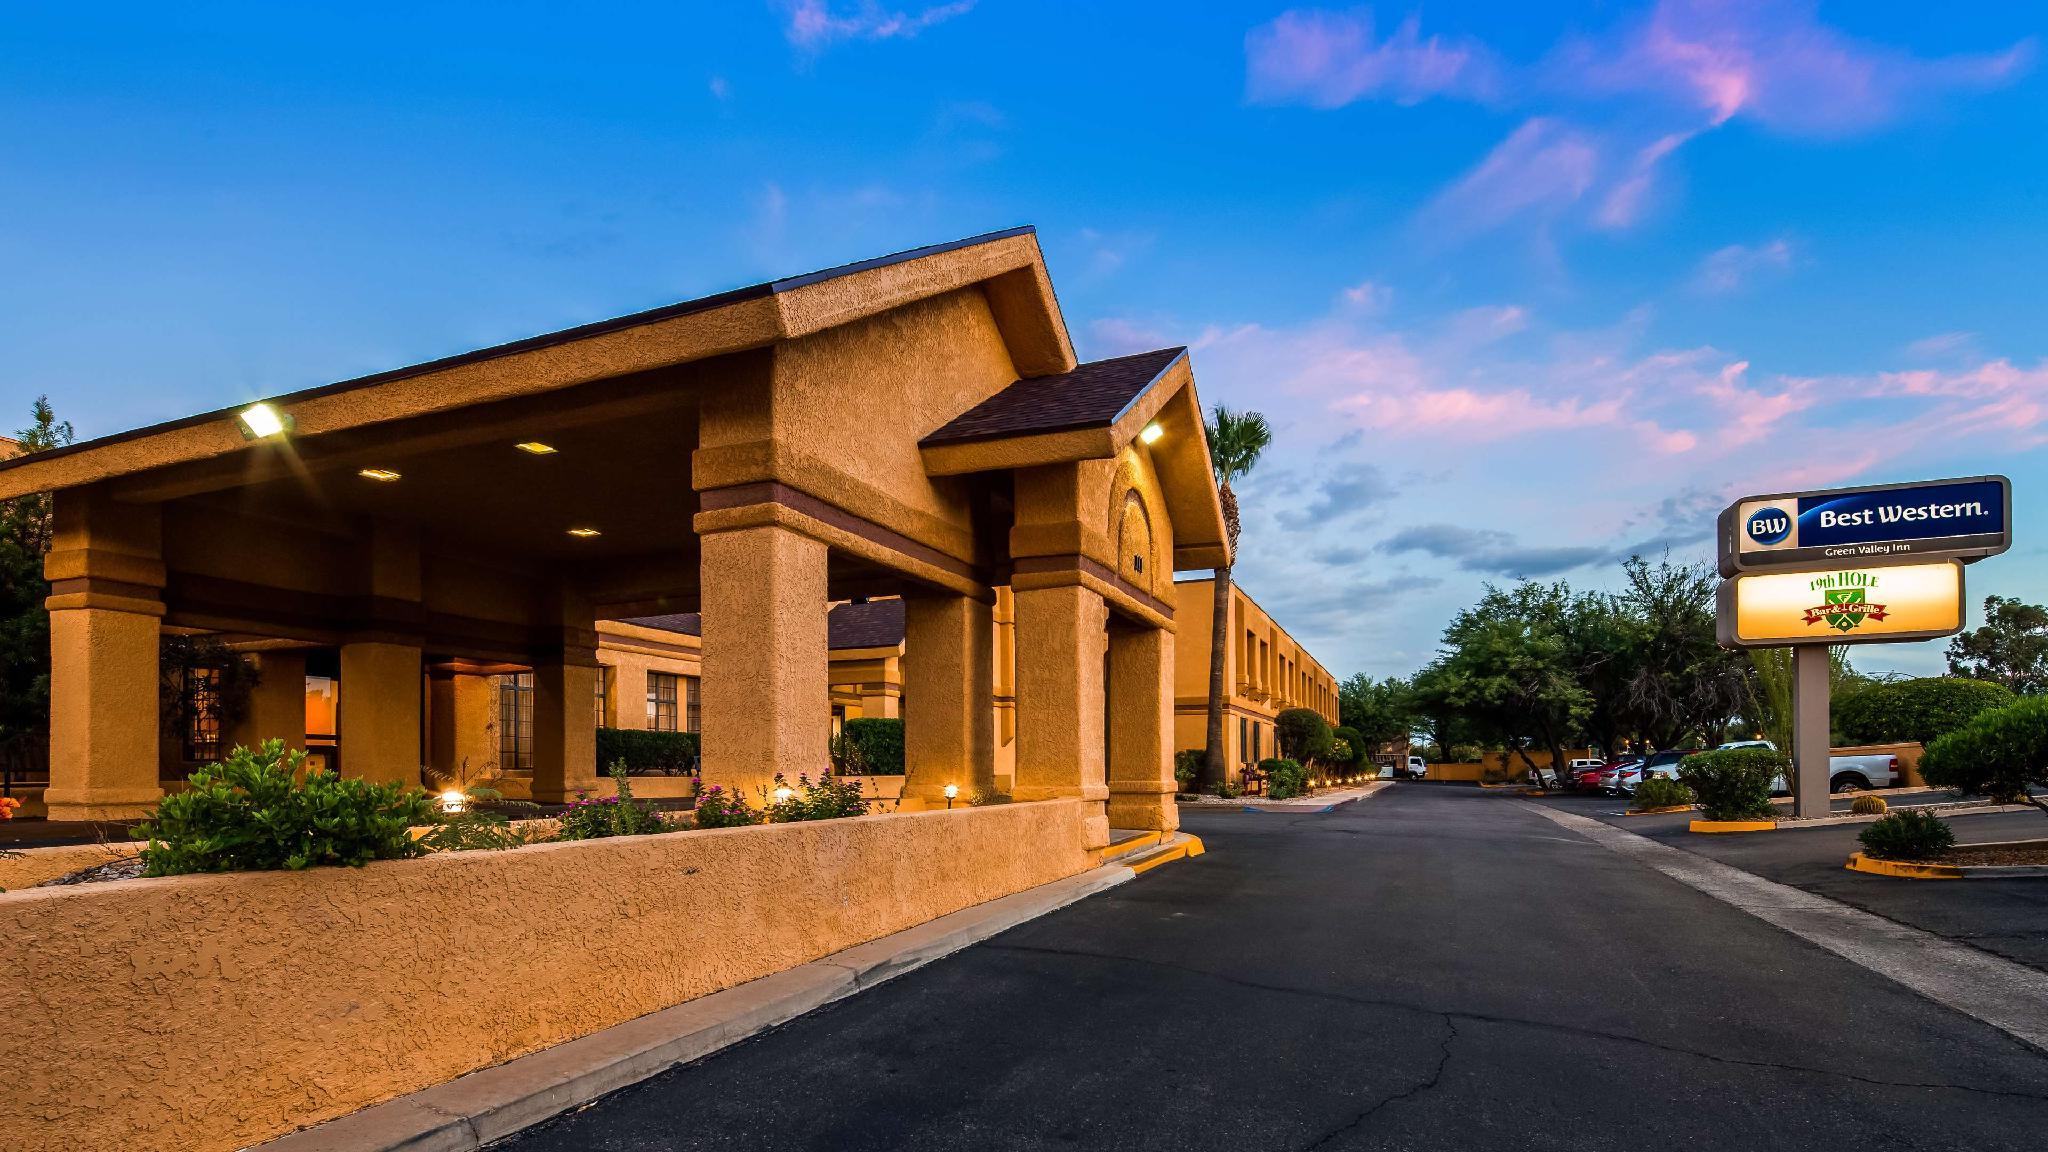 Best Western Green Valley Inn Green Valley (AZ) United States